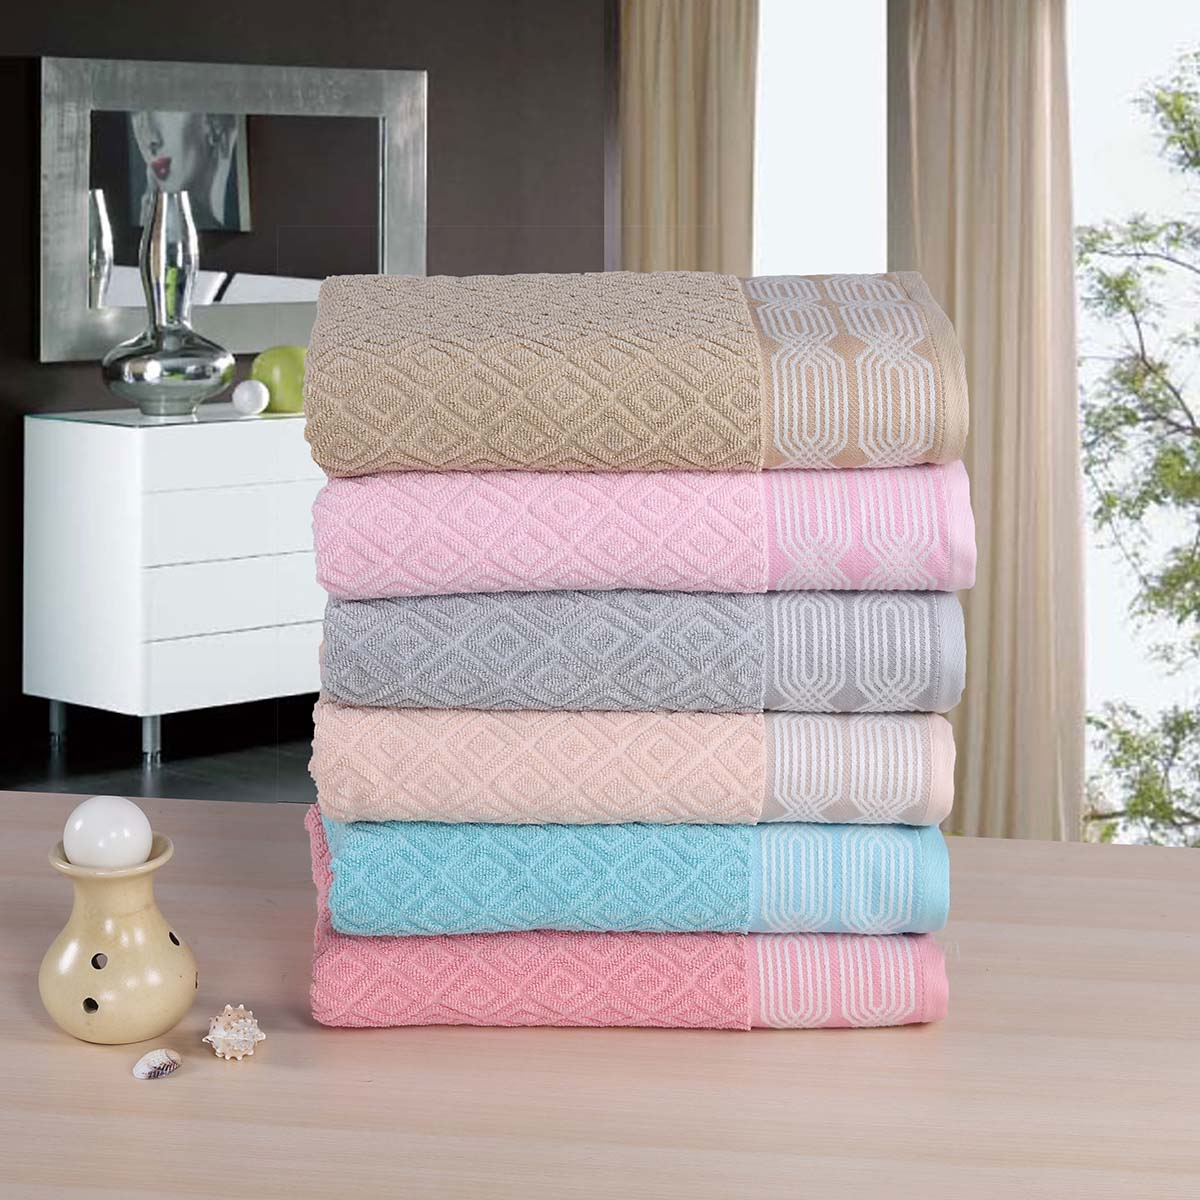 Louisa Bath Towels stacked